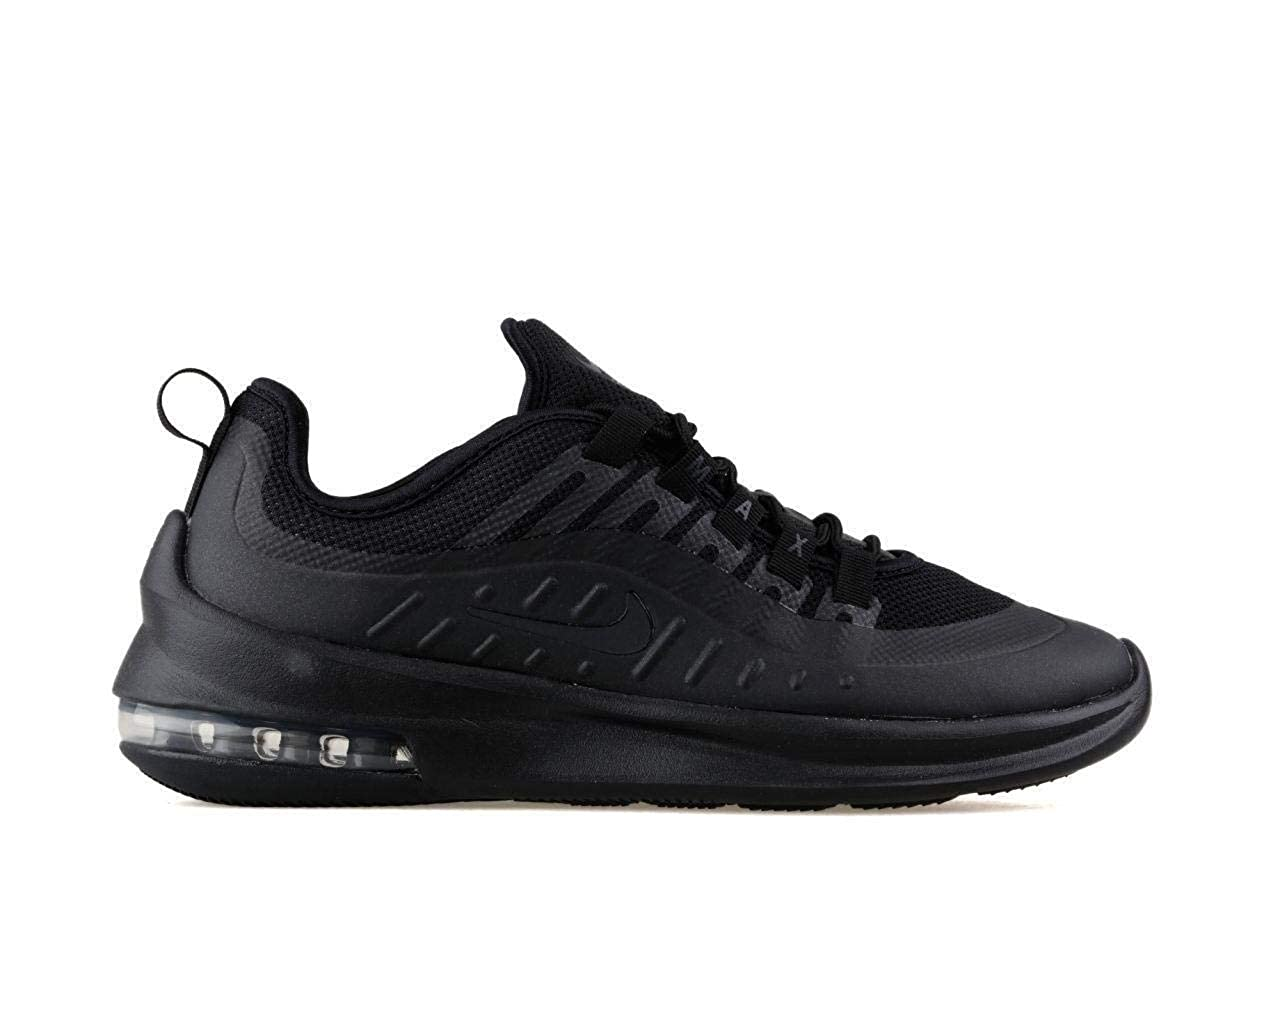 7abad85952 Amazon.com | Nike Air Max Axis Mens Aa2146-006 Size 9 Black/Anthracite |  Basketball